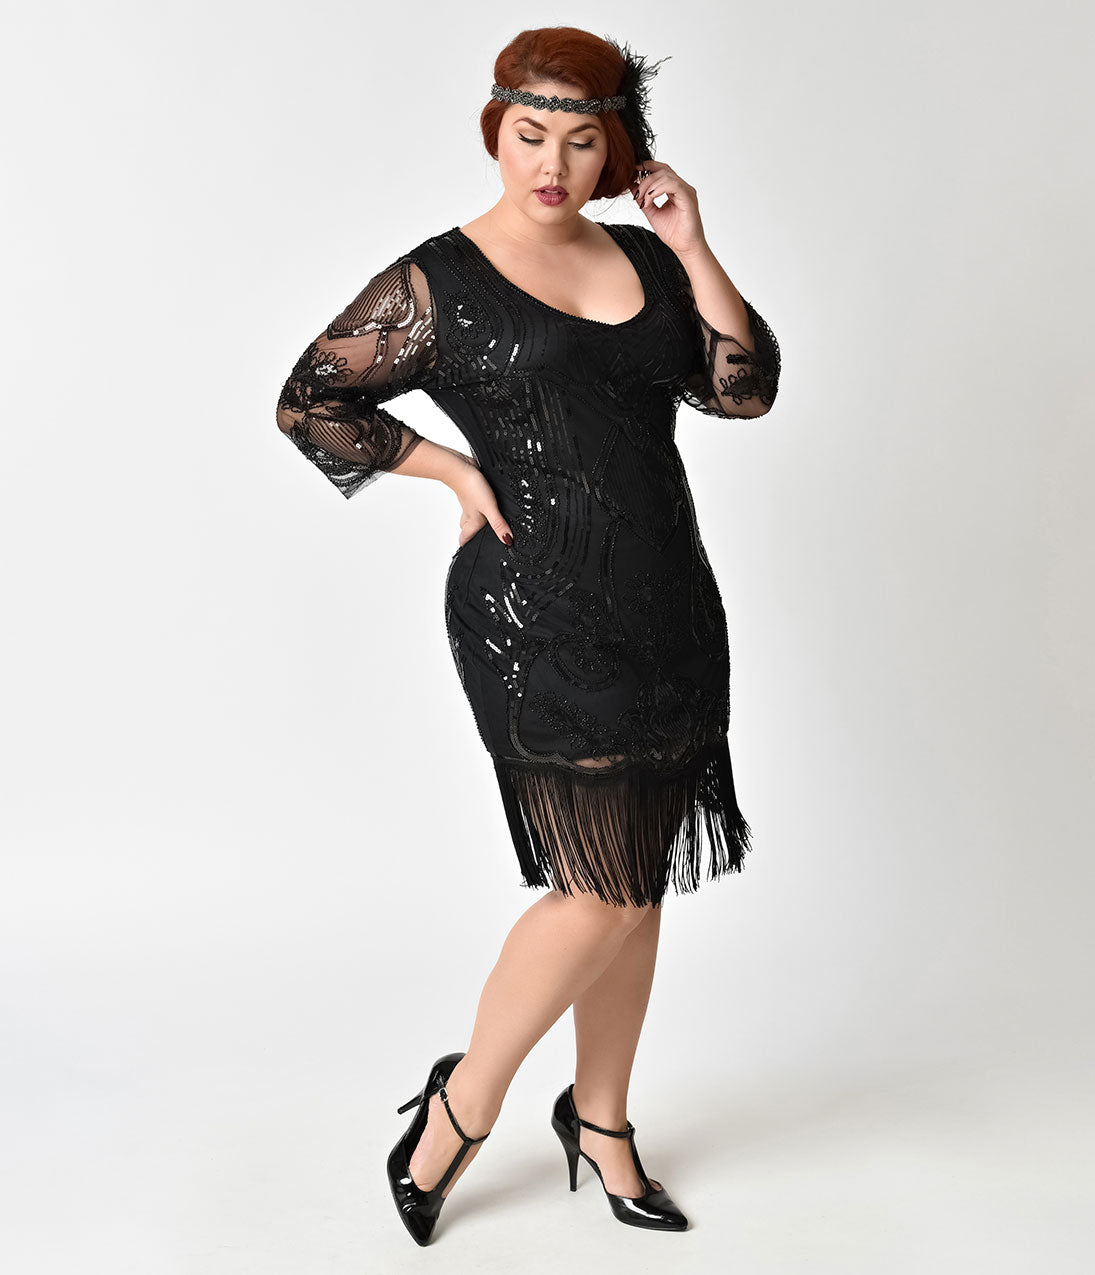 Best 1920s Prom Dresses – Great Gatsby Style Gowns Unique Vintage Plus Size Black Beaded  Sequin Margaux Sleeved Fringe Flapper Dress $110.00 AT vintagedancer.com